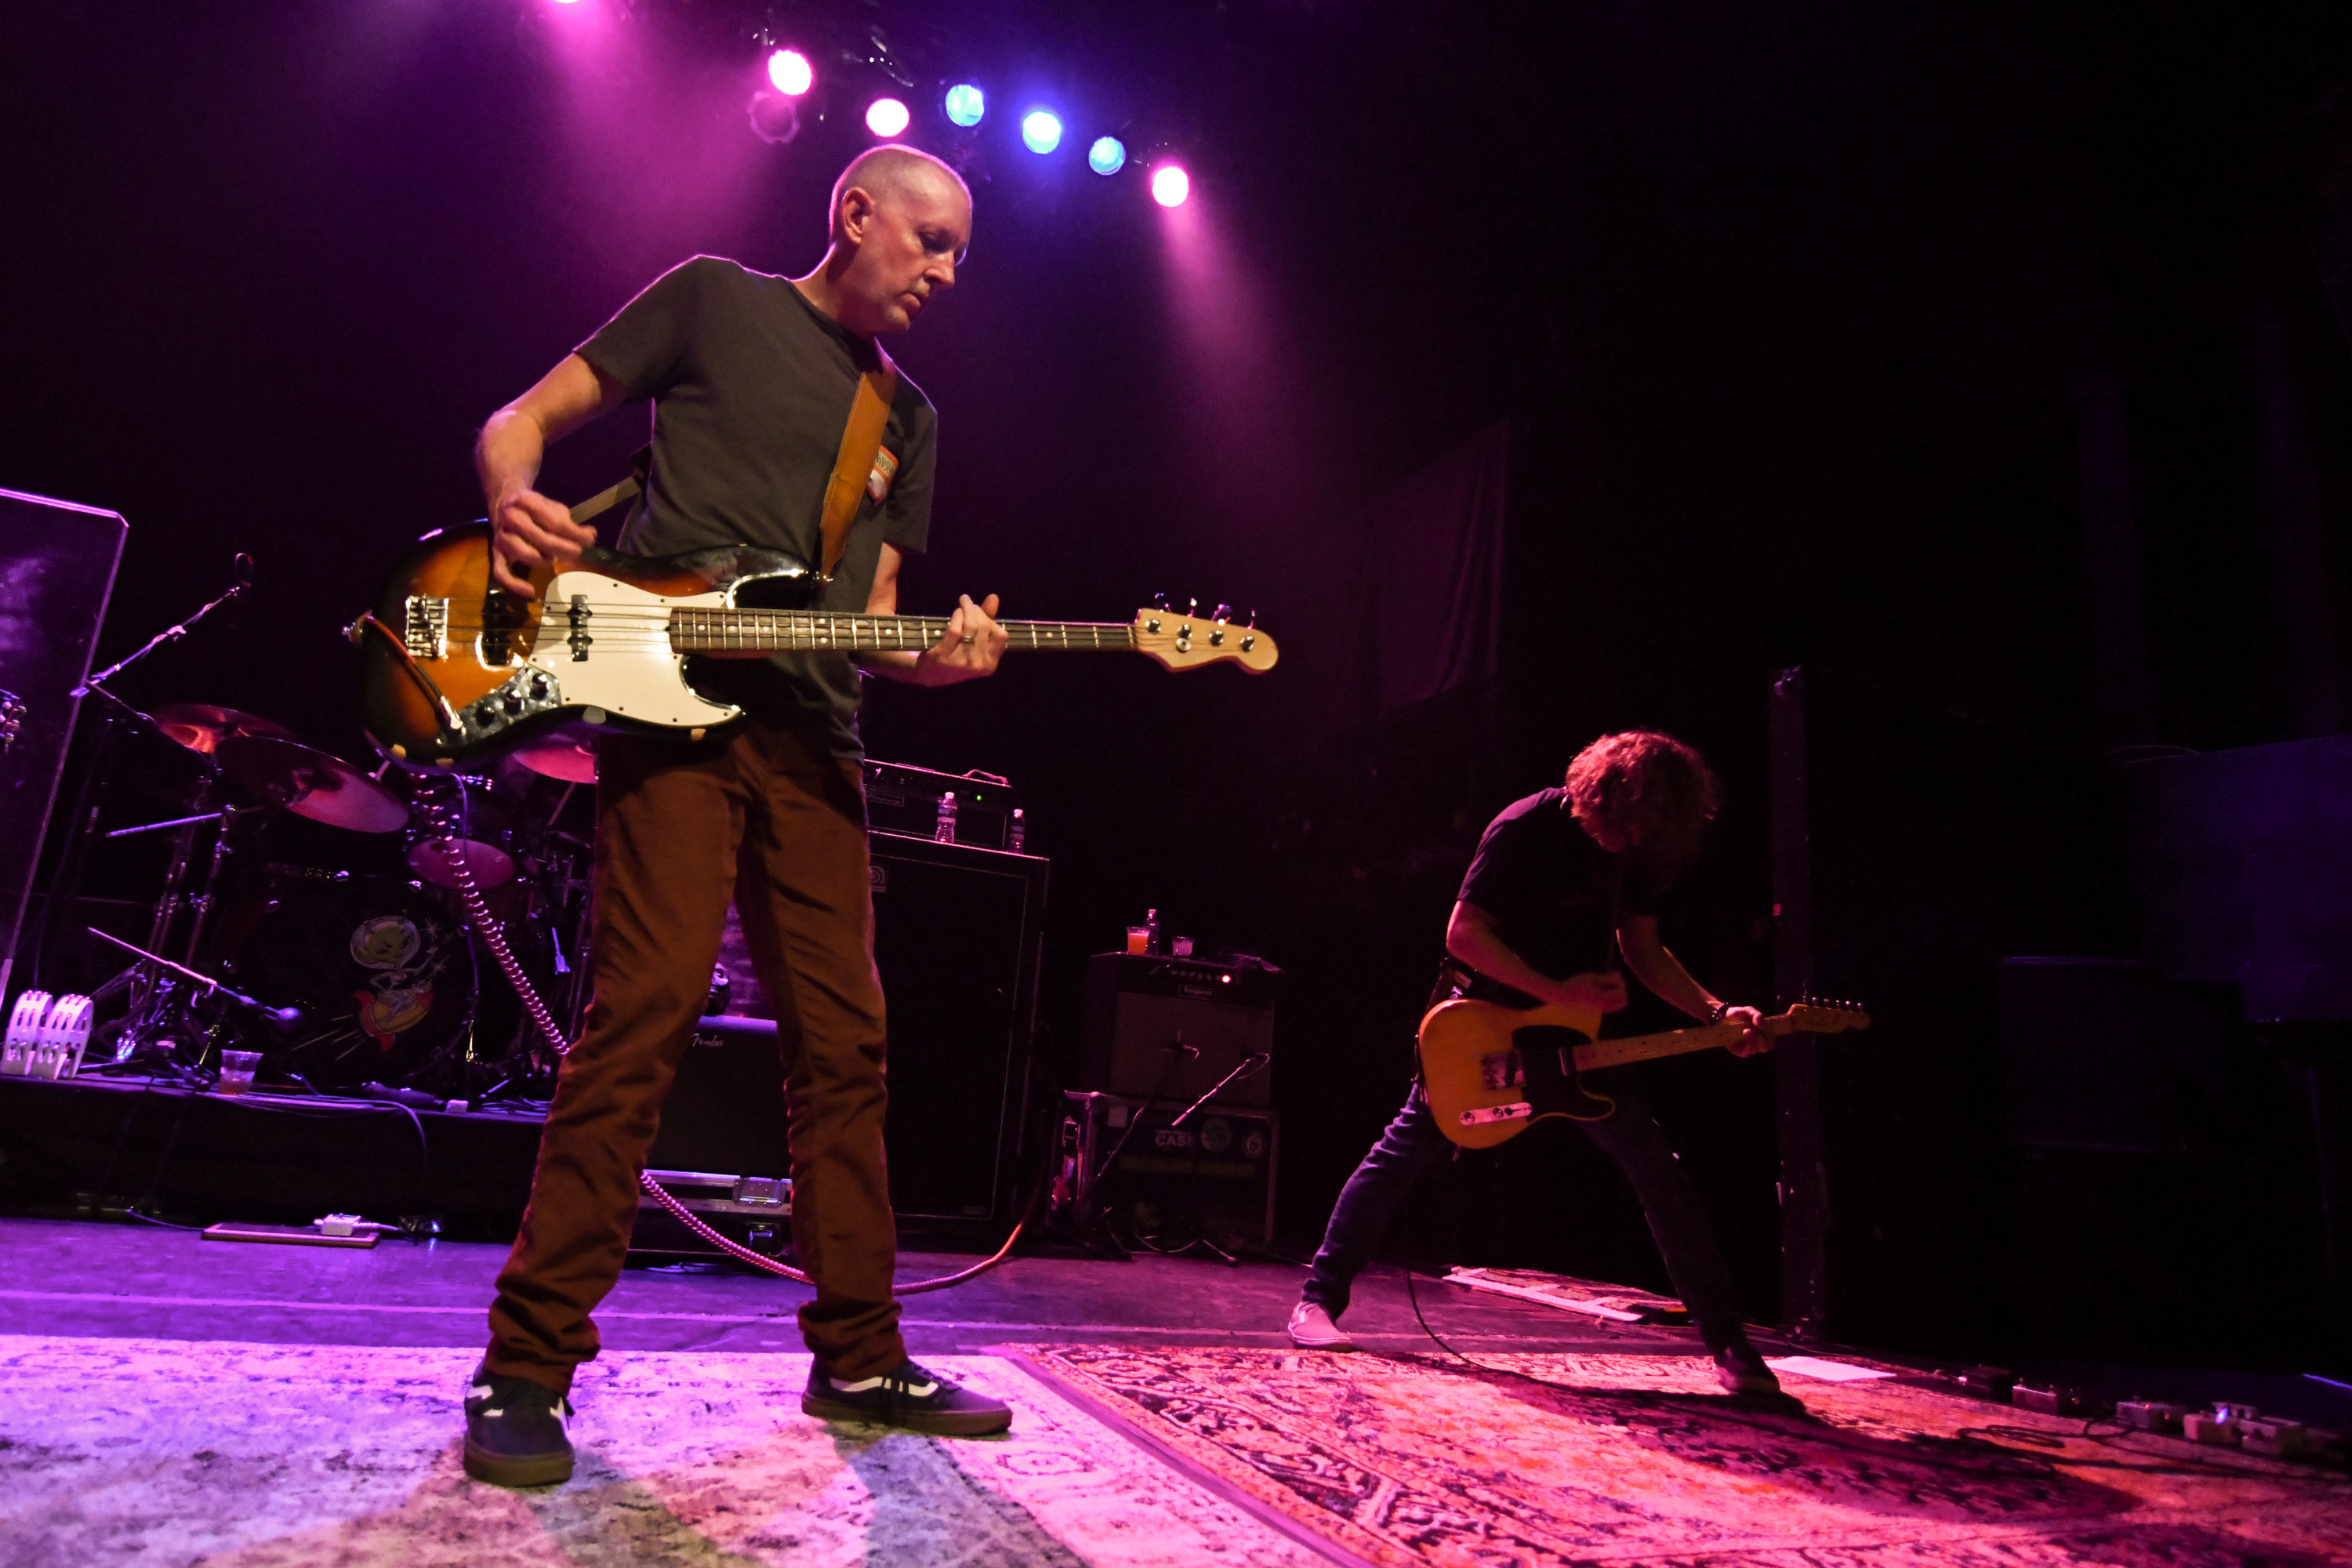 Gin Blossoms Turn NYC into 'Allison Road' at Their Mixed